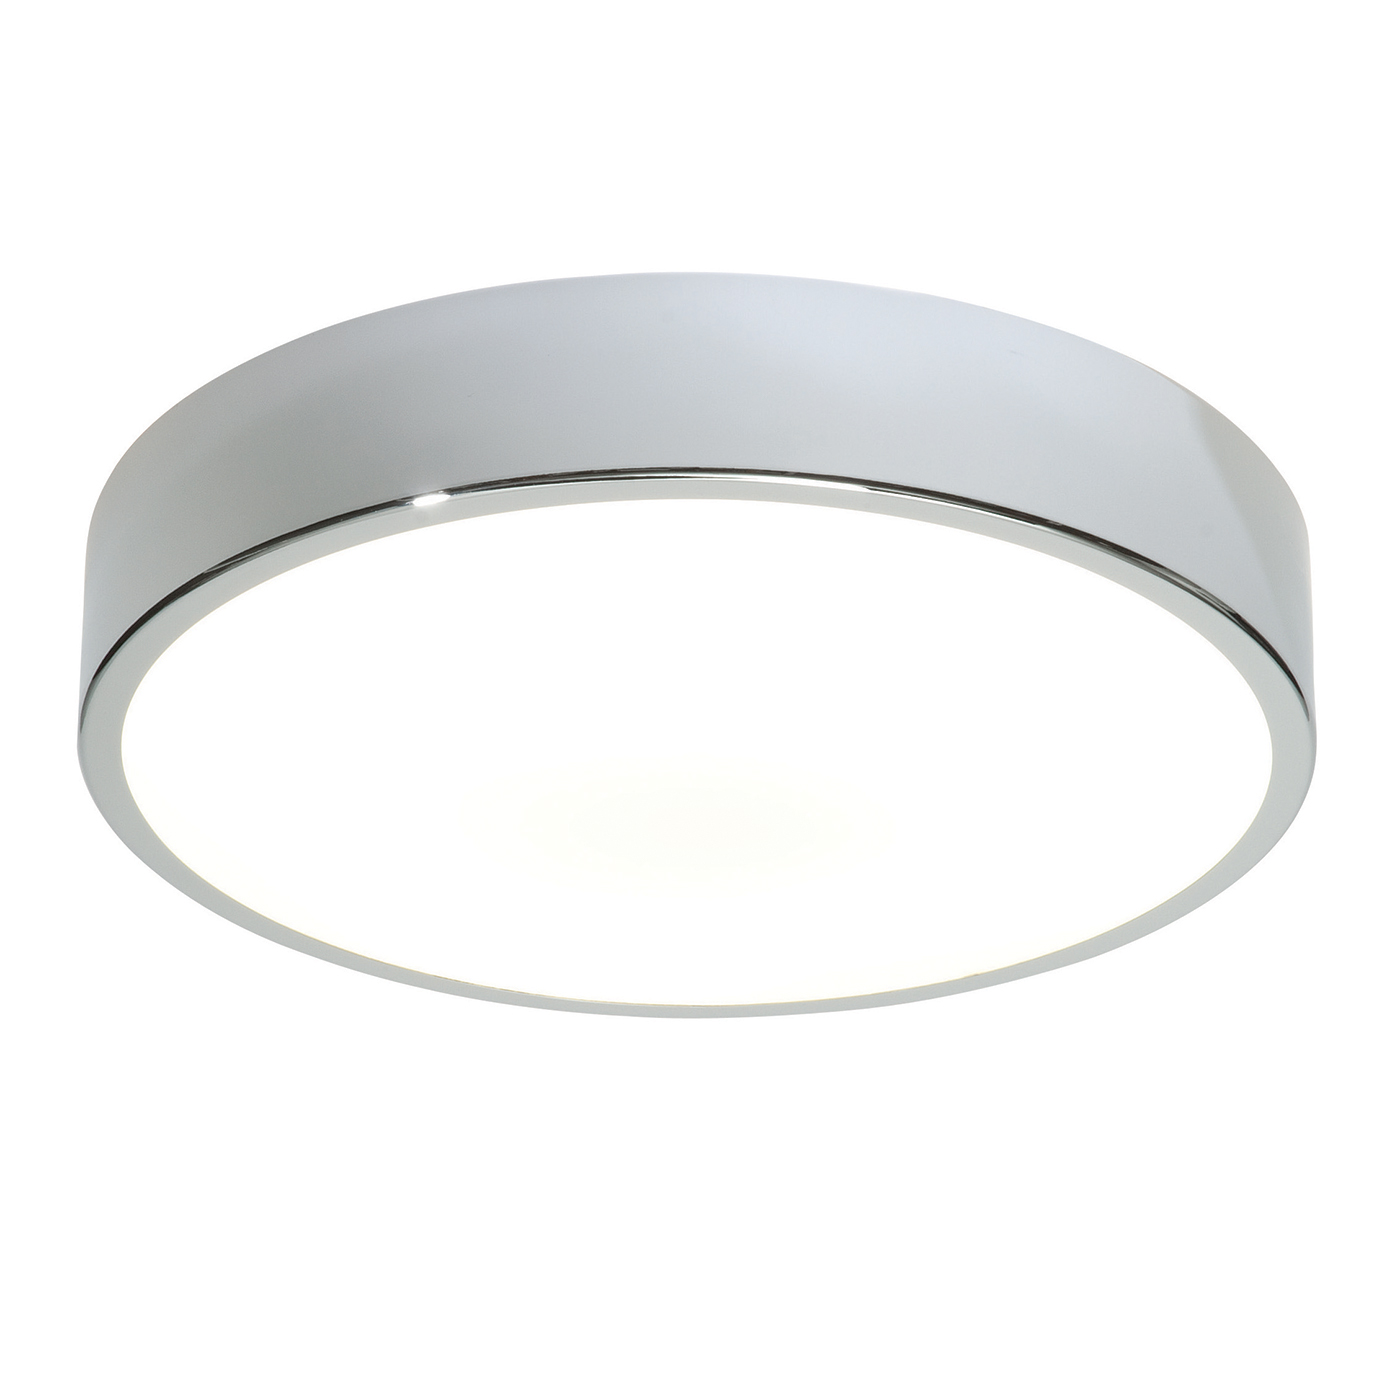 Endon Lipco 300mm flush bathroom ceiling light HF IP44 28W chrome & acrylic Thumbnail 1